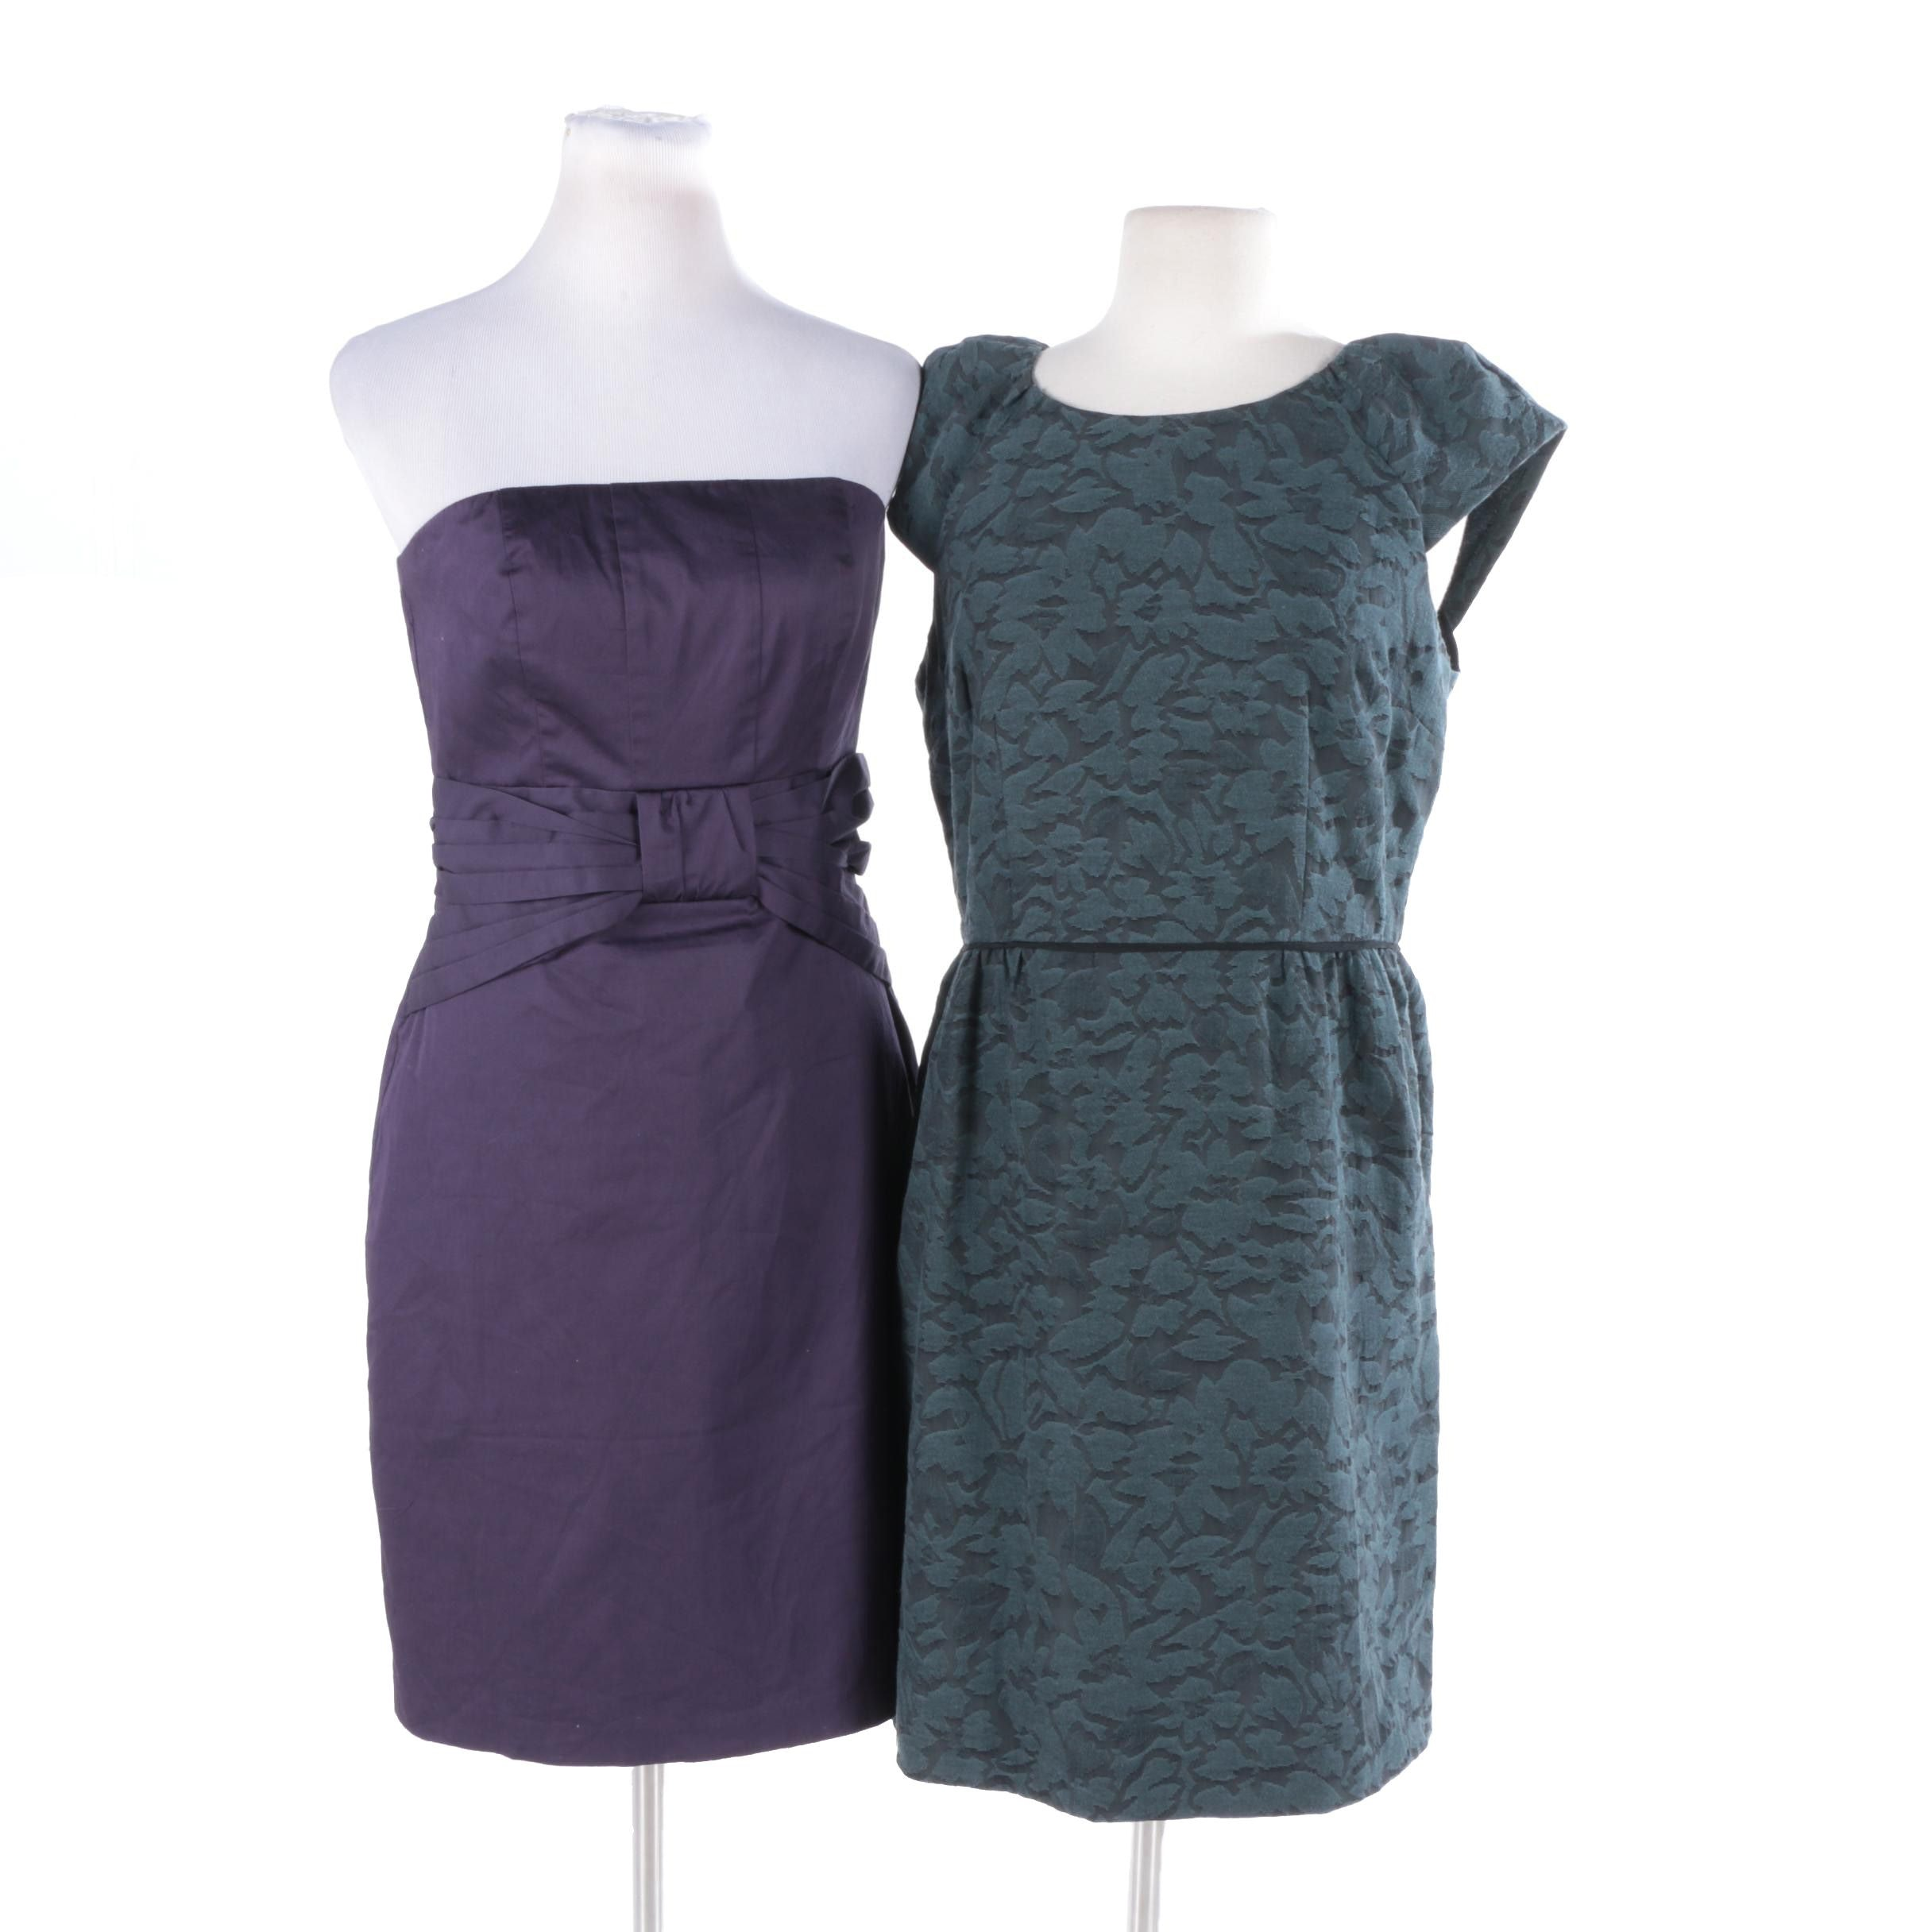 Women's Dresses Including Loft and The Limited